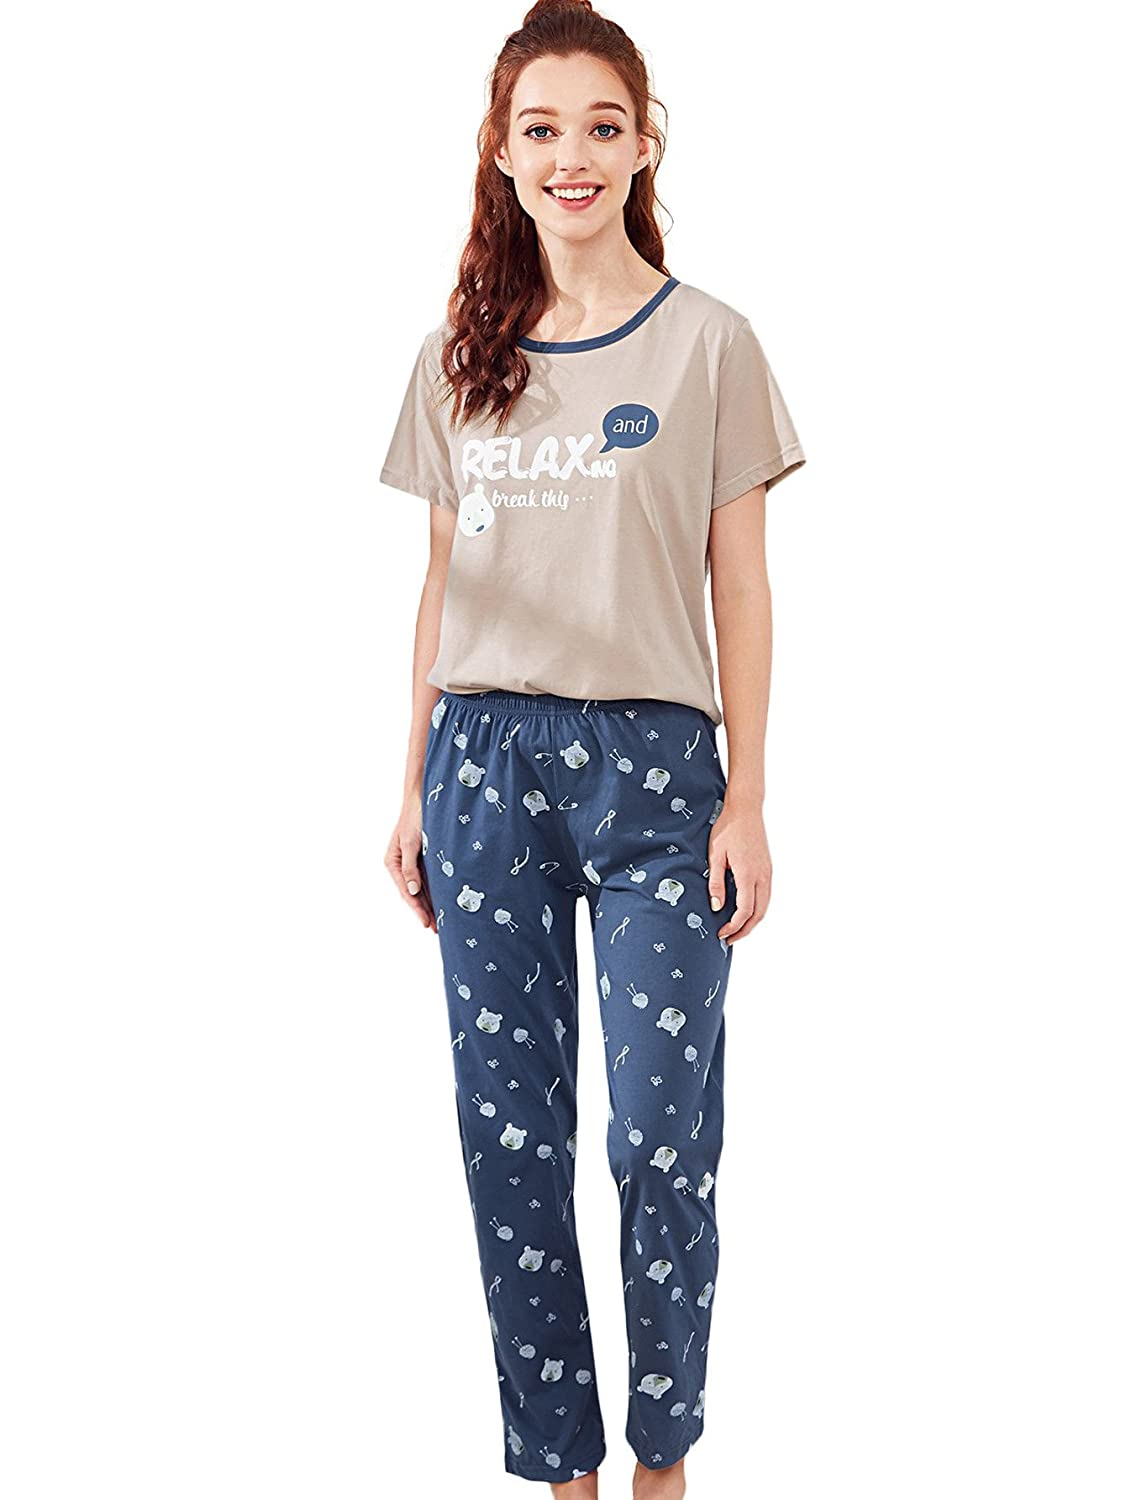 Multicolor2 Milumia Women's Cute Round Neck Pattern Print Short Sleeve Tee & Pants Sleepwear Pajama Set